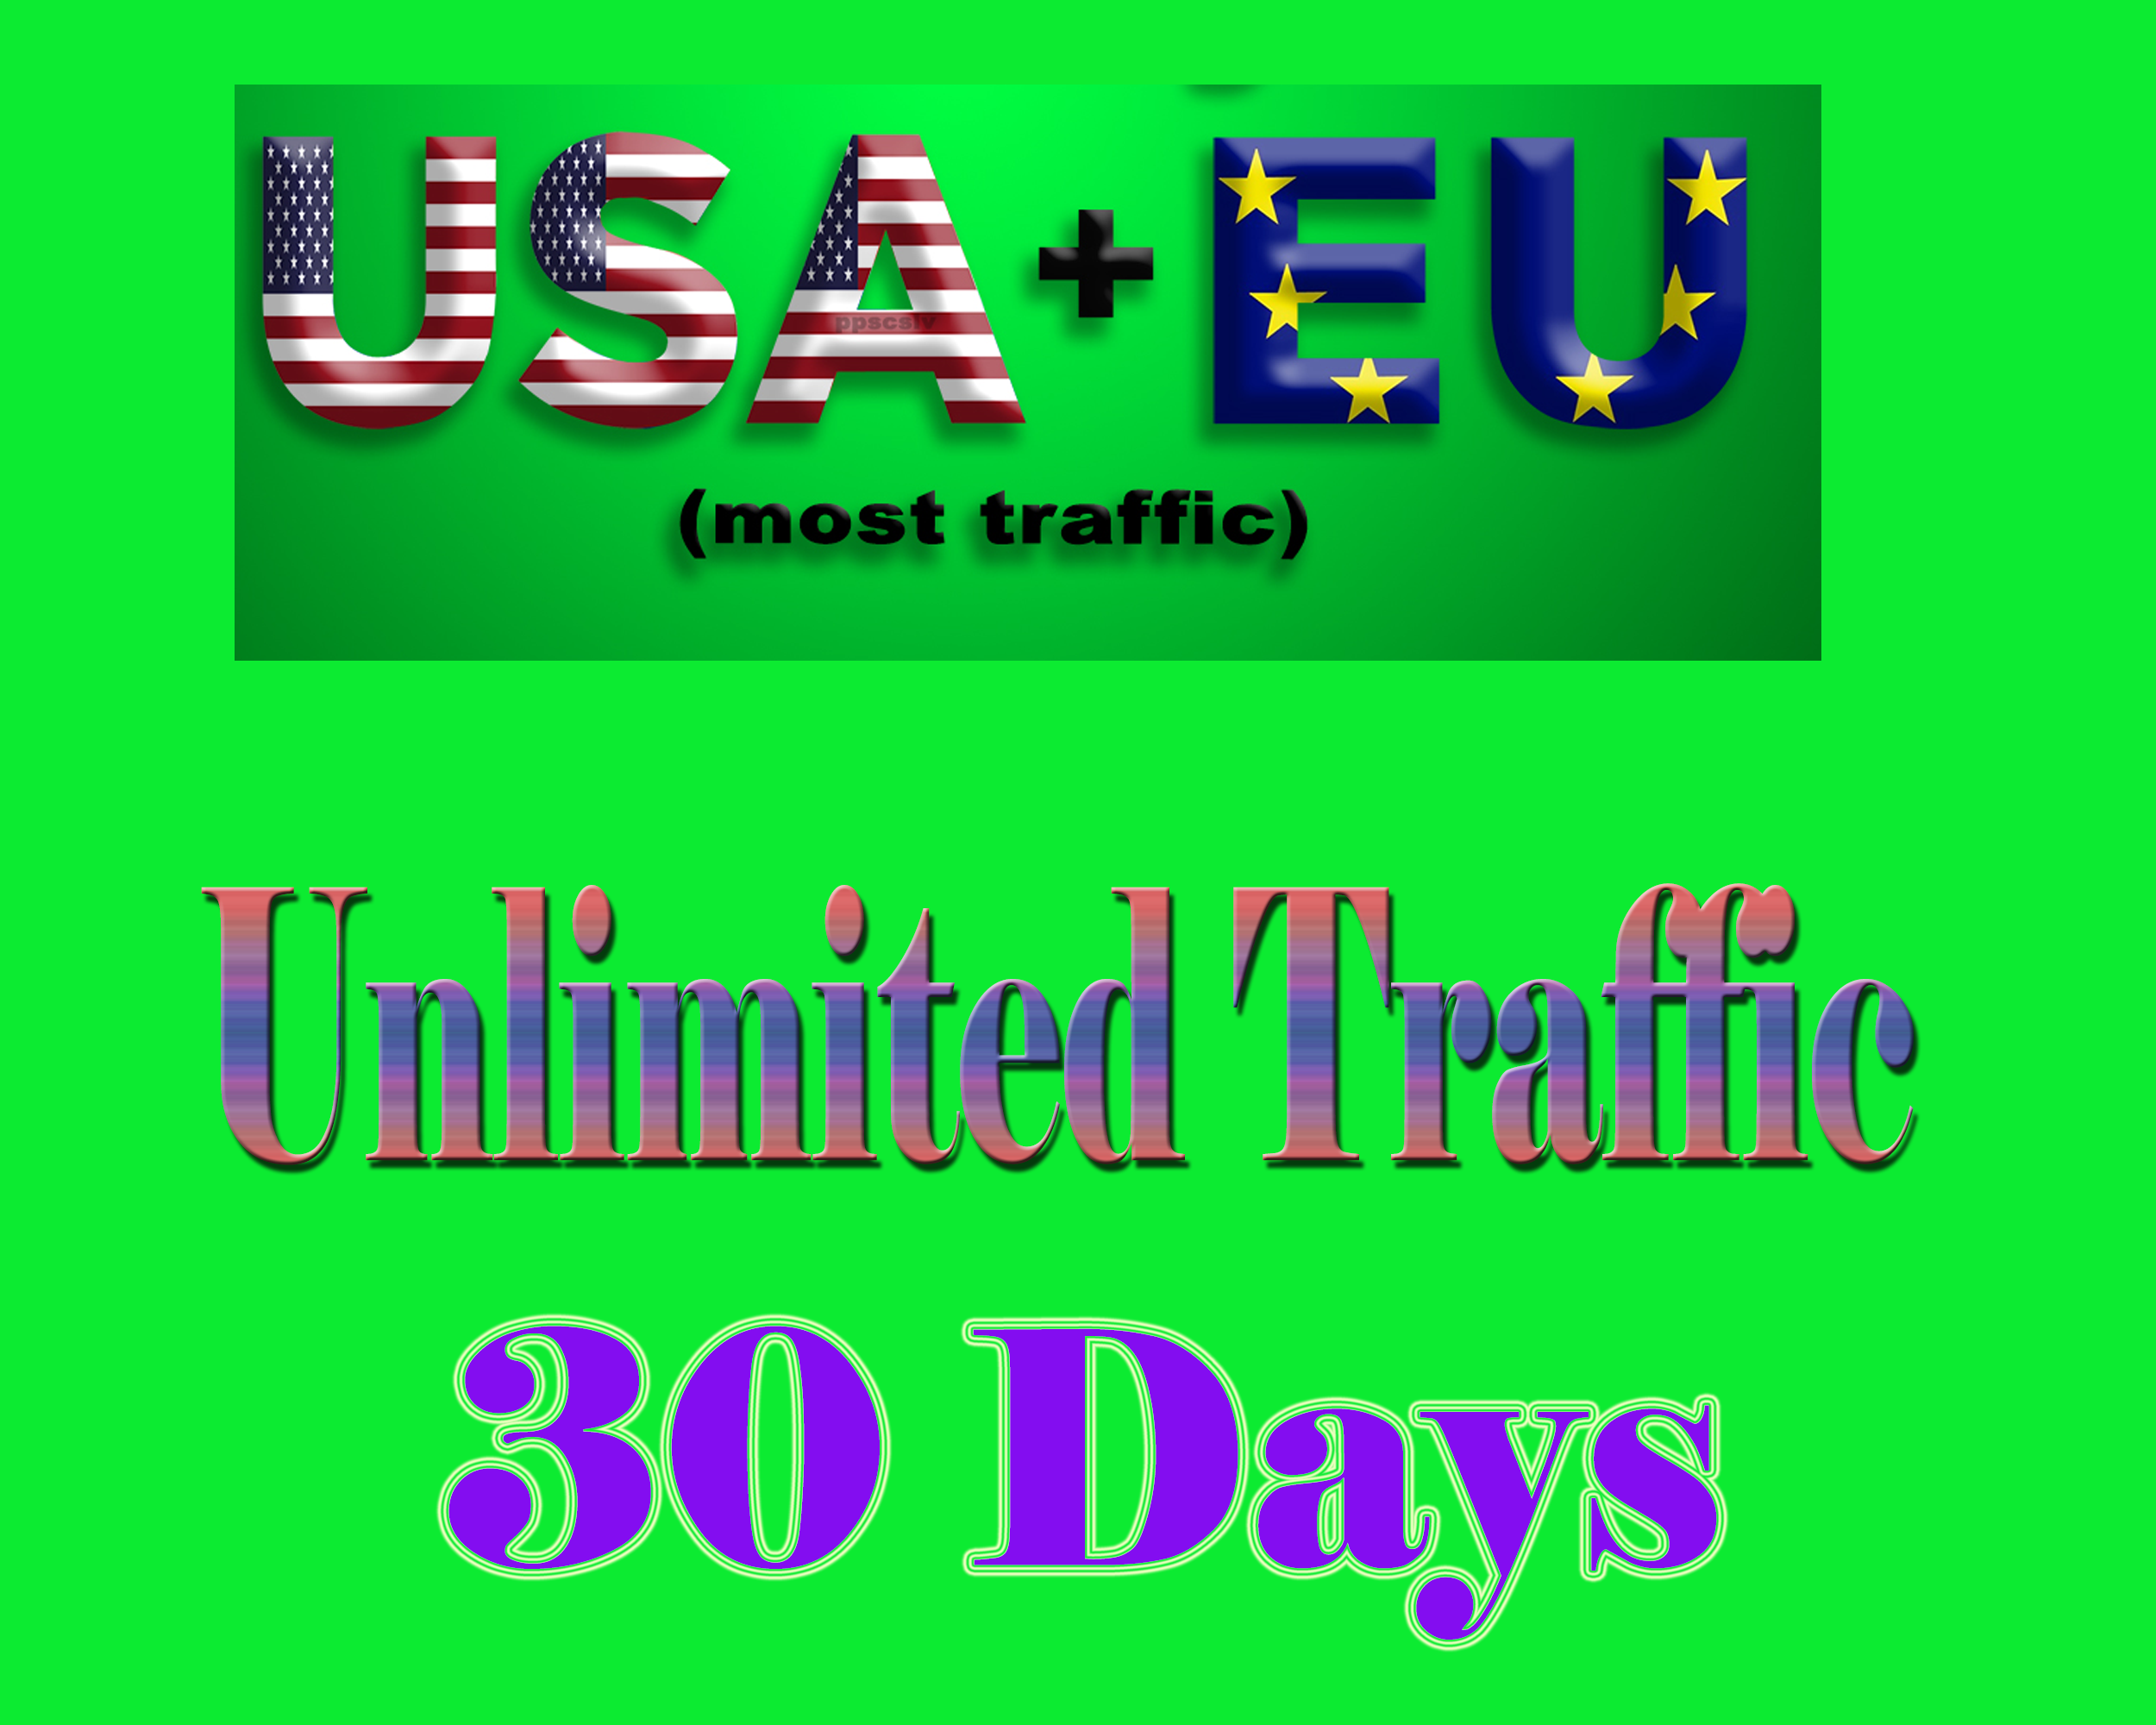 USA EU Unlimited Website Traffic for 1 month